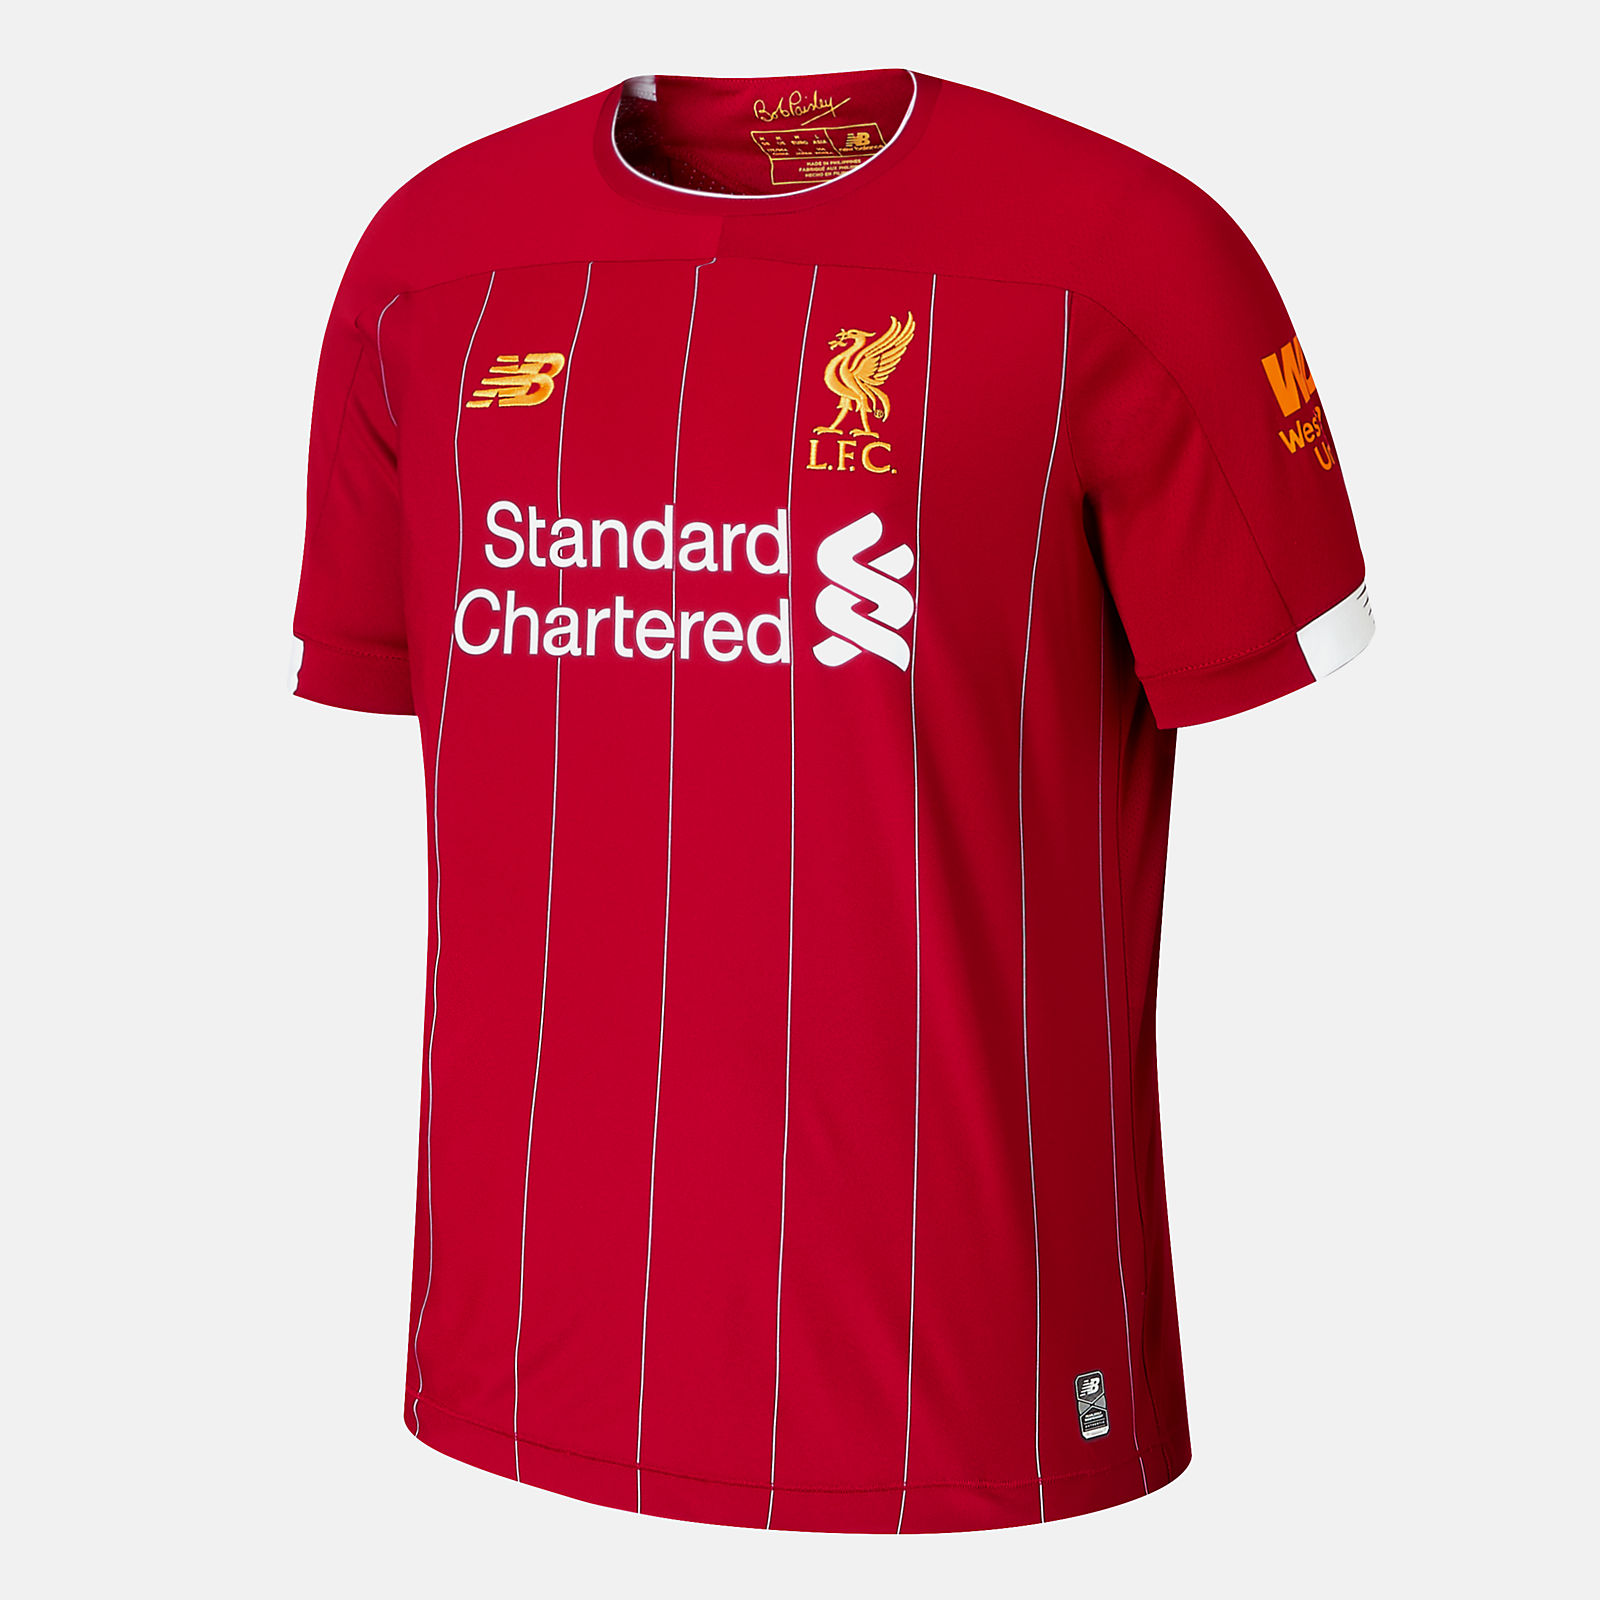 liverpool fc home ss jersey no epl patch new balance liverpool fc home ss jersey no epl patch